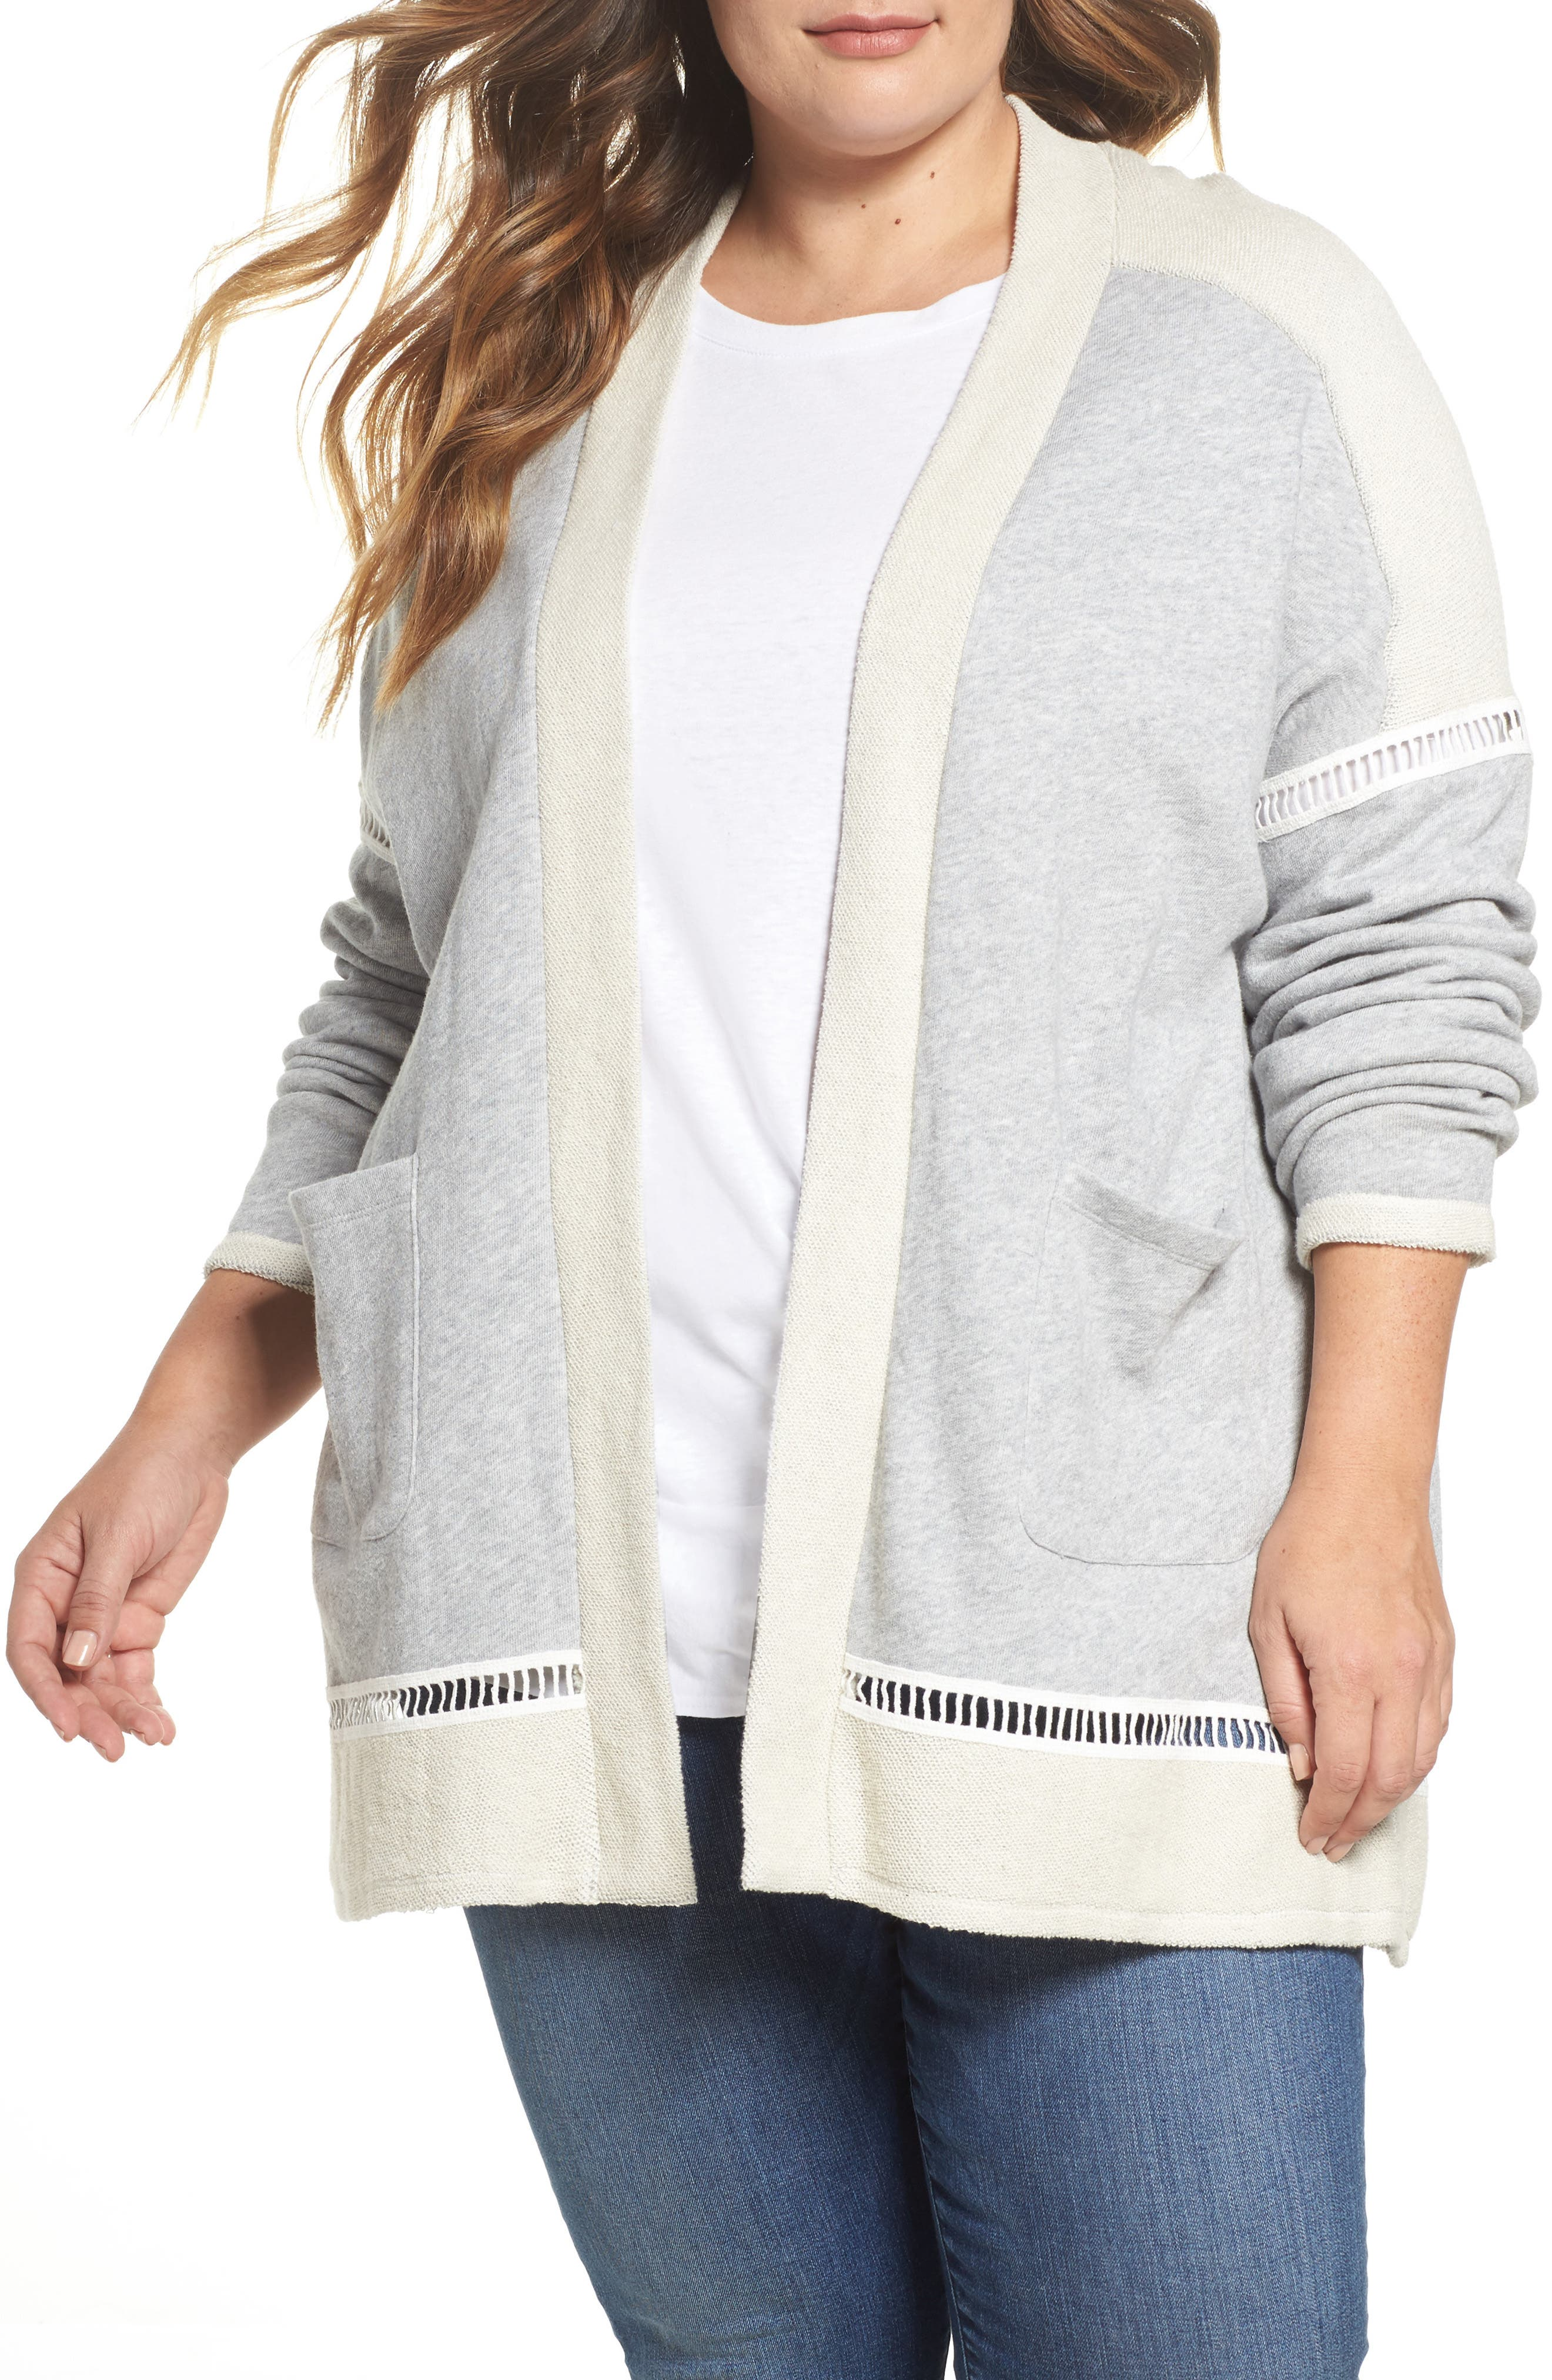 French Terry Cardigan,                             Main thumbnail 1, color,                             Grey Heather